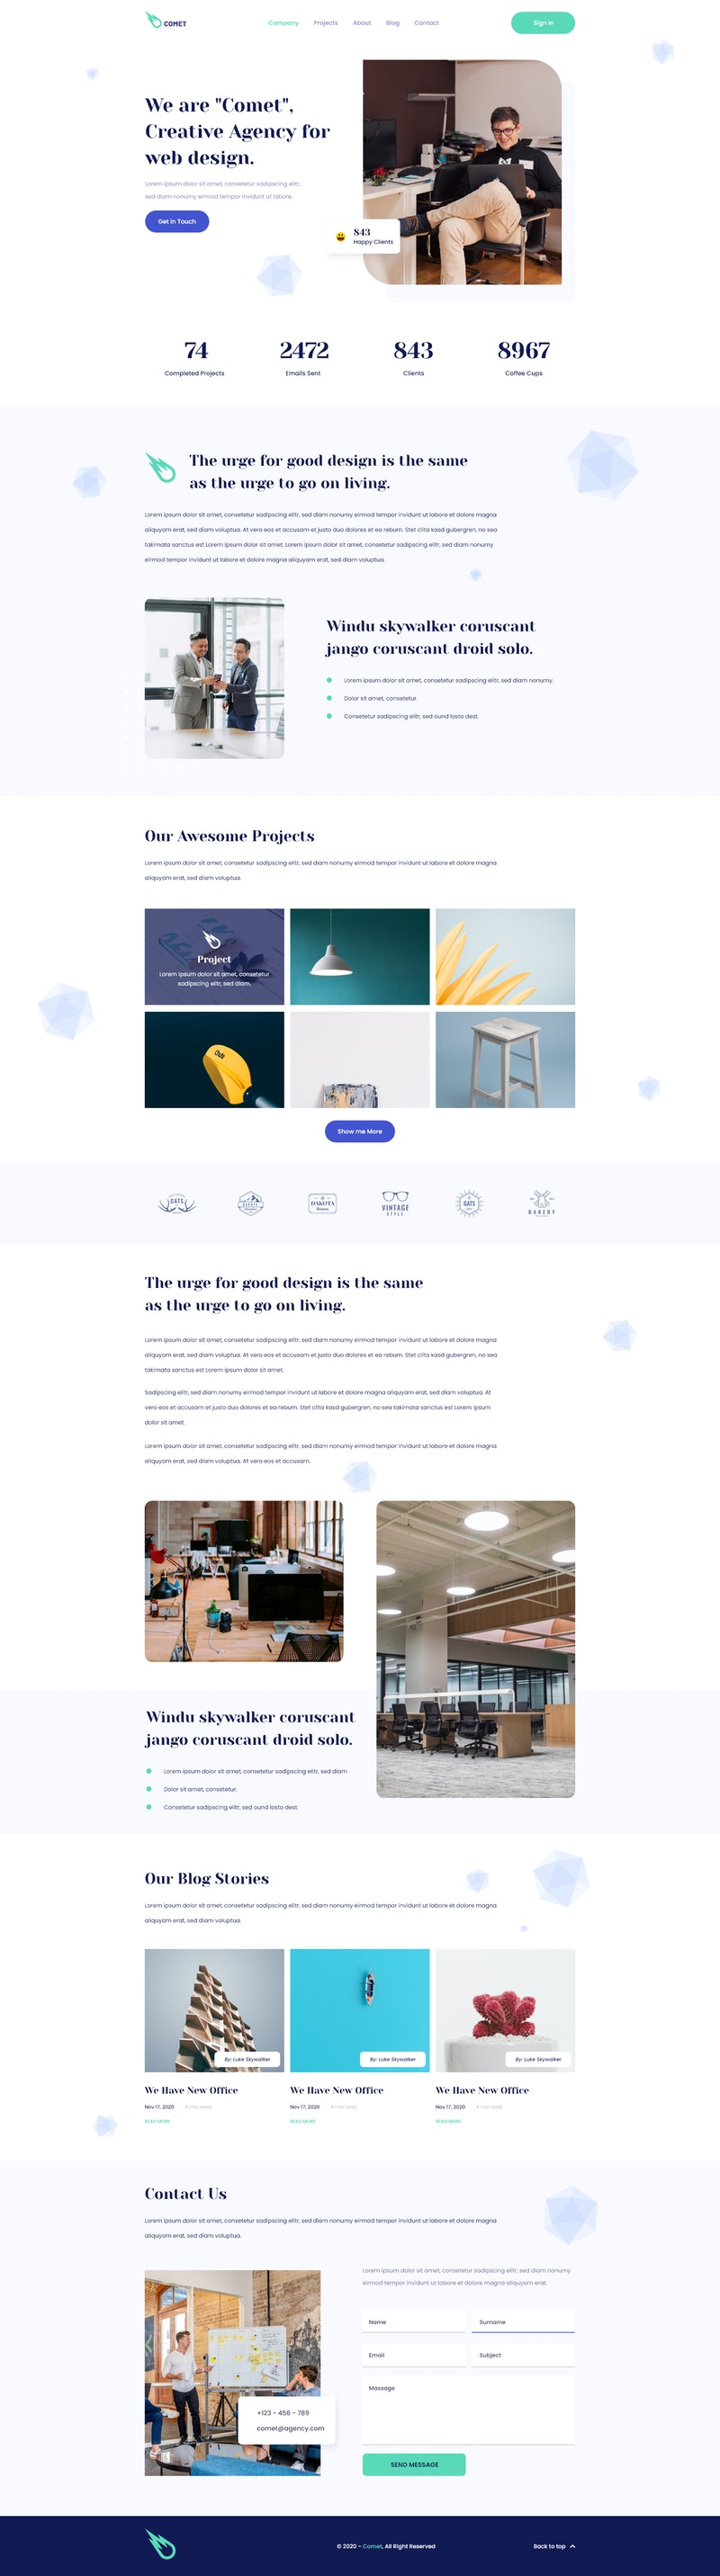 Comet - Adobe XD Landing Page preview